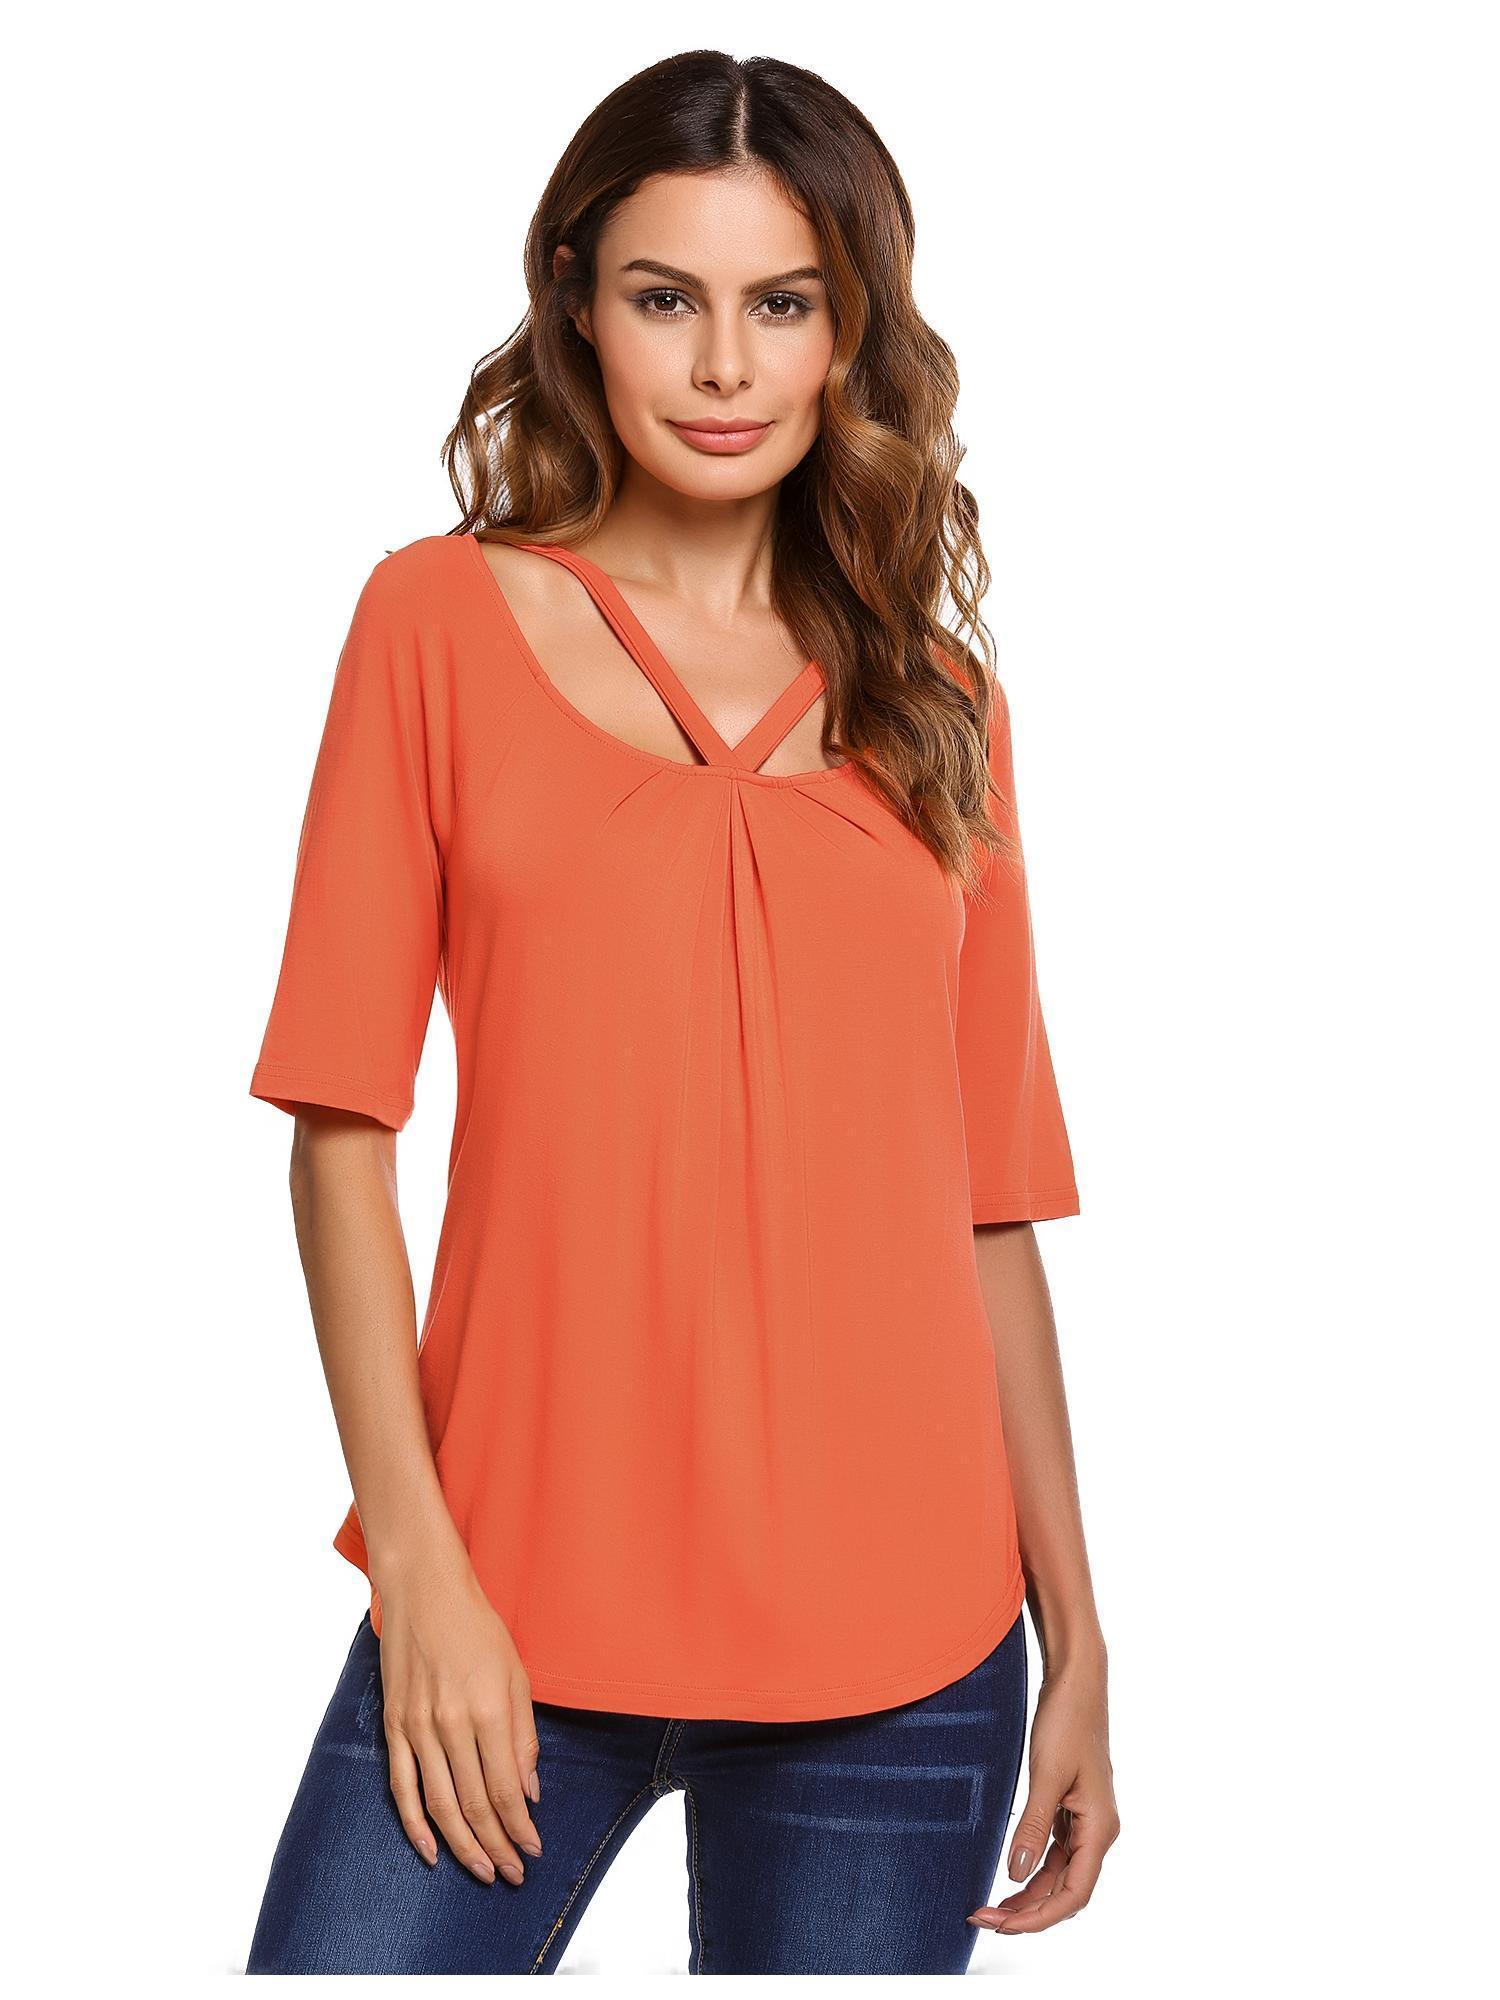 2018 The Newest Women Cut Out Half Sleeve Front Draped Solid Casual T-Shirt Tops HFON